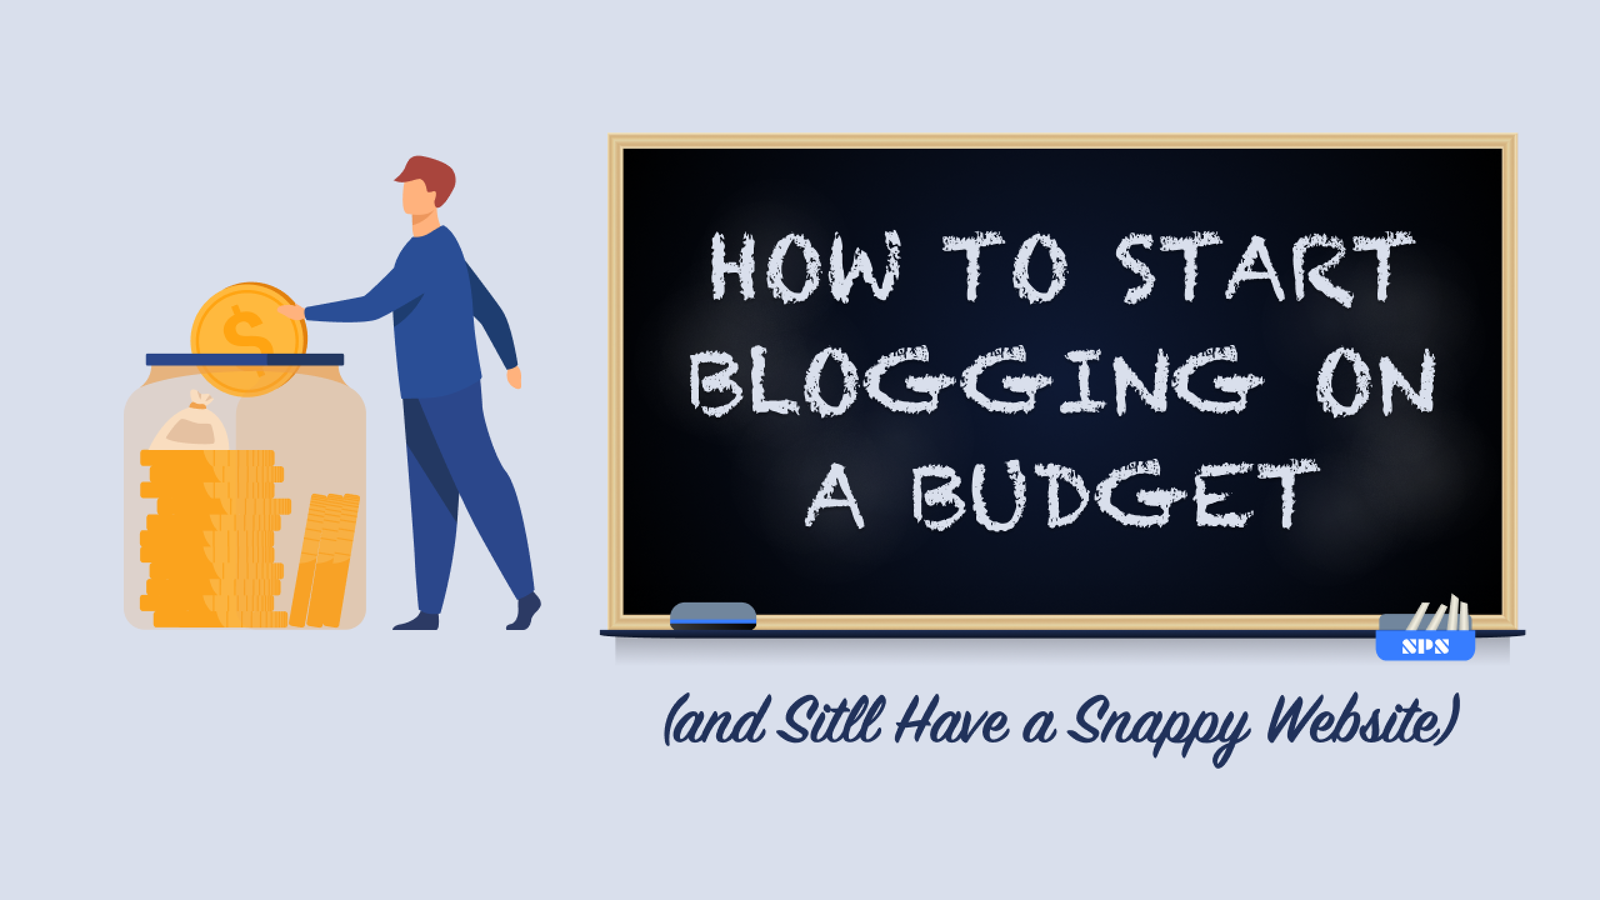 How to Start Blogging on Budget (and Still Have a Snappy Website)